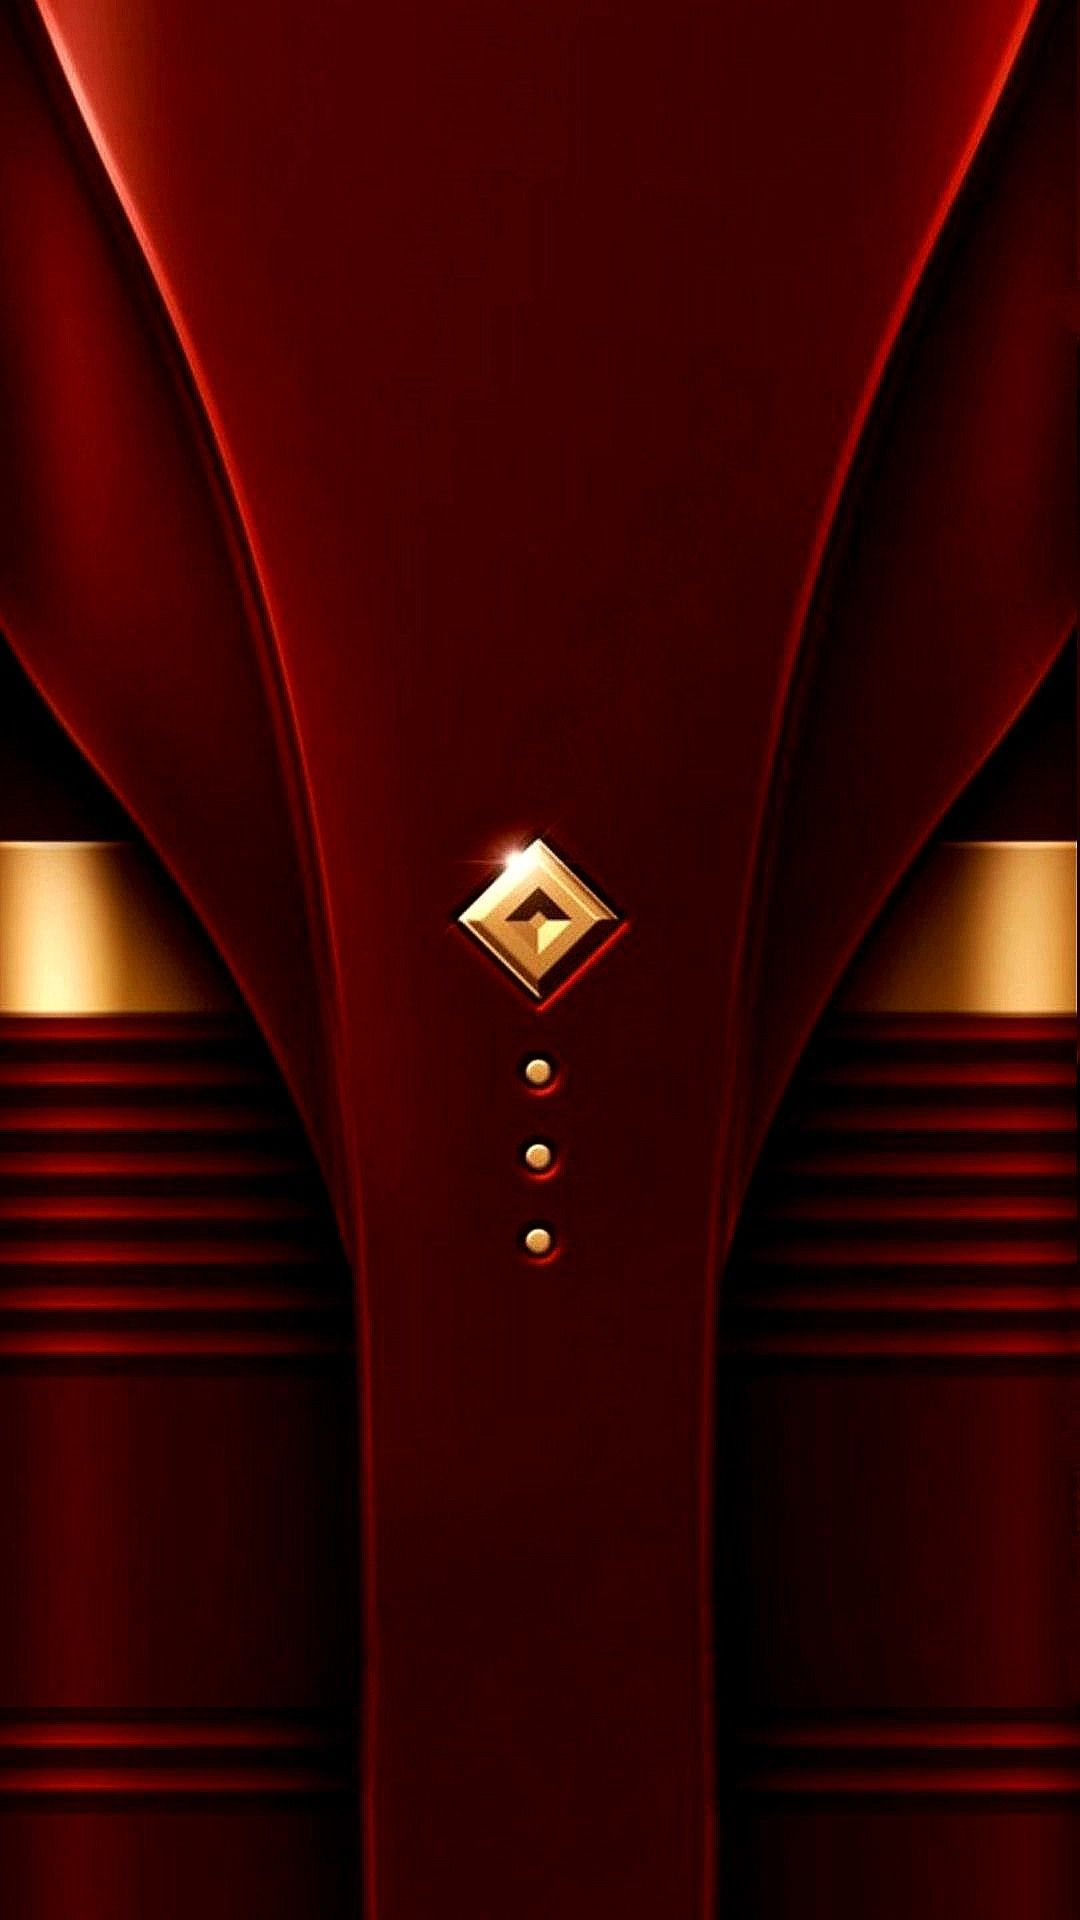 Luxury Red And Gold Wallpaper Iphone Red And Gold Wallpaper Beautiful Wallpaper For Phone Gold Wallpaper Iphone